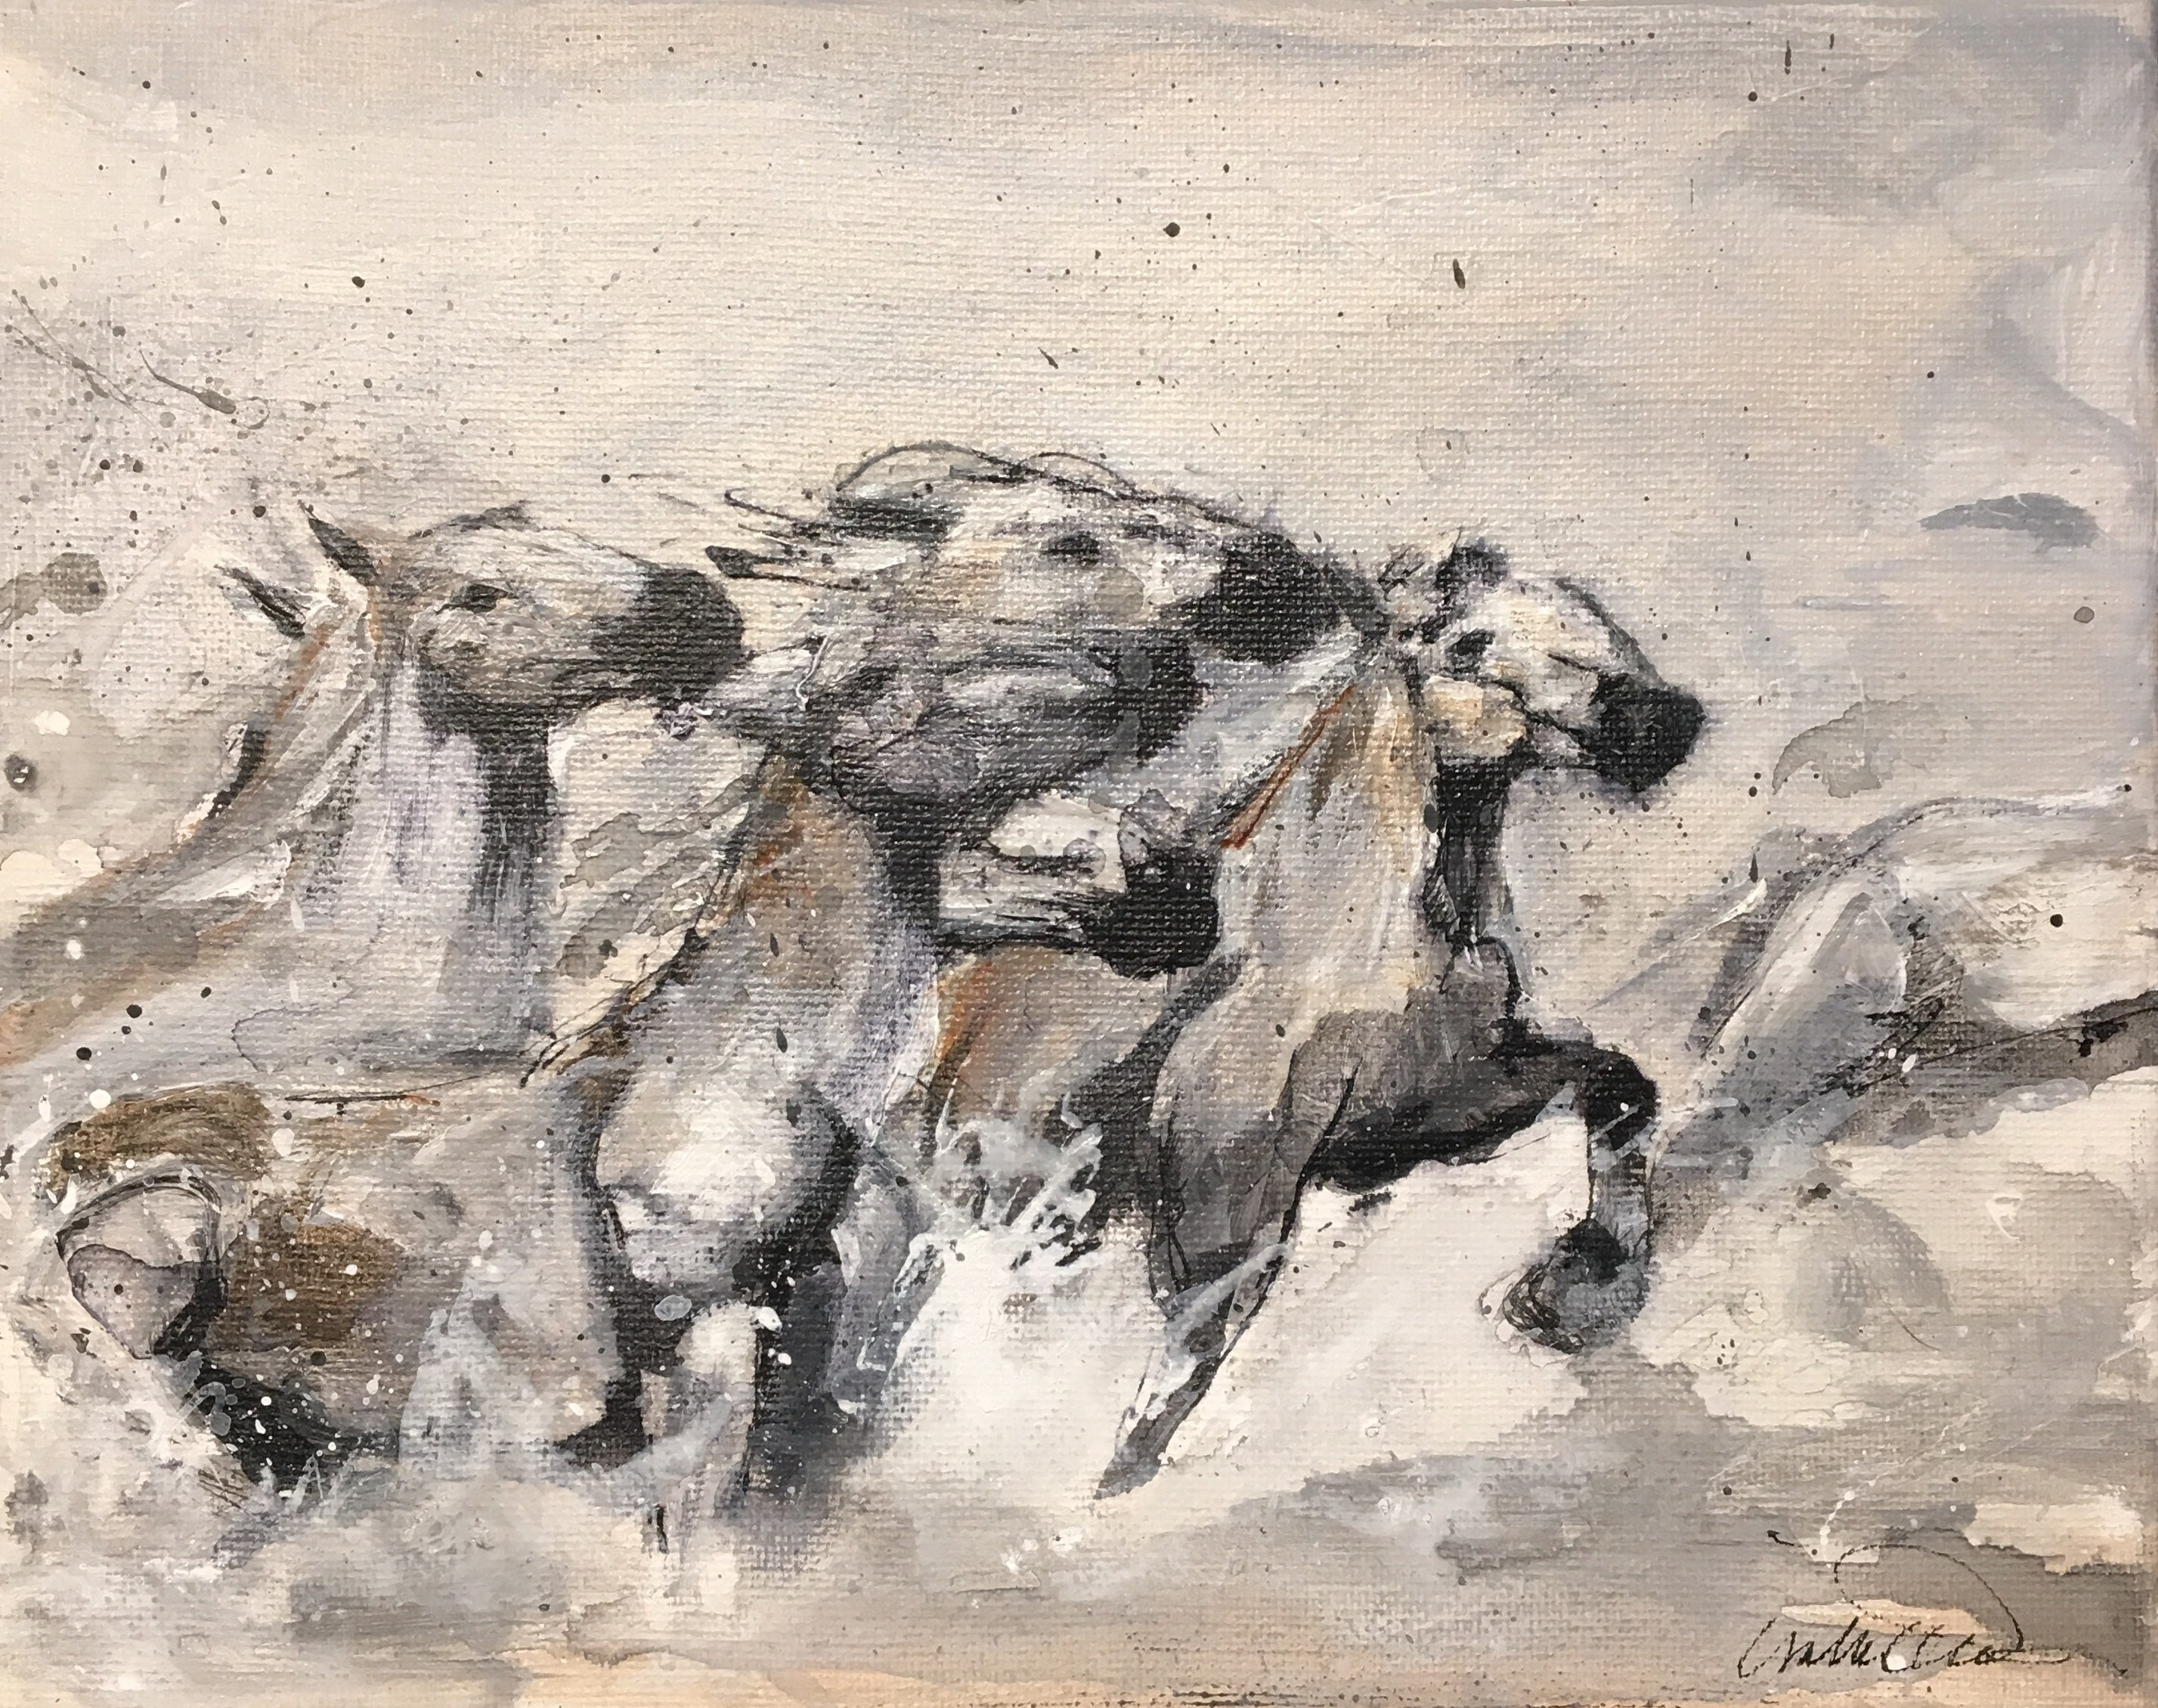 All the White Horses II, retouched original canvas print